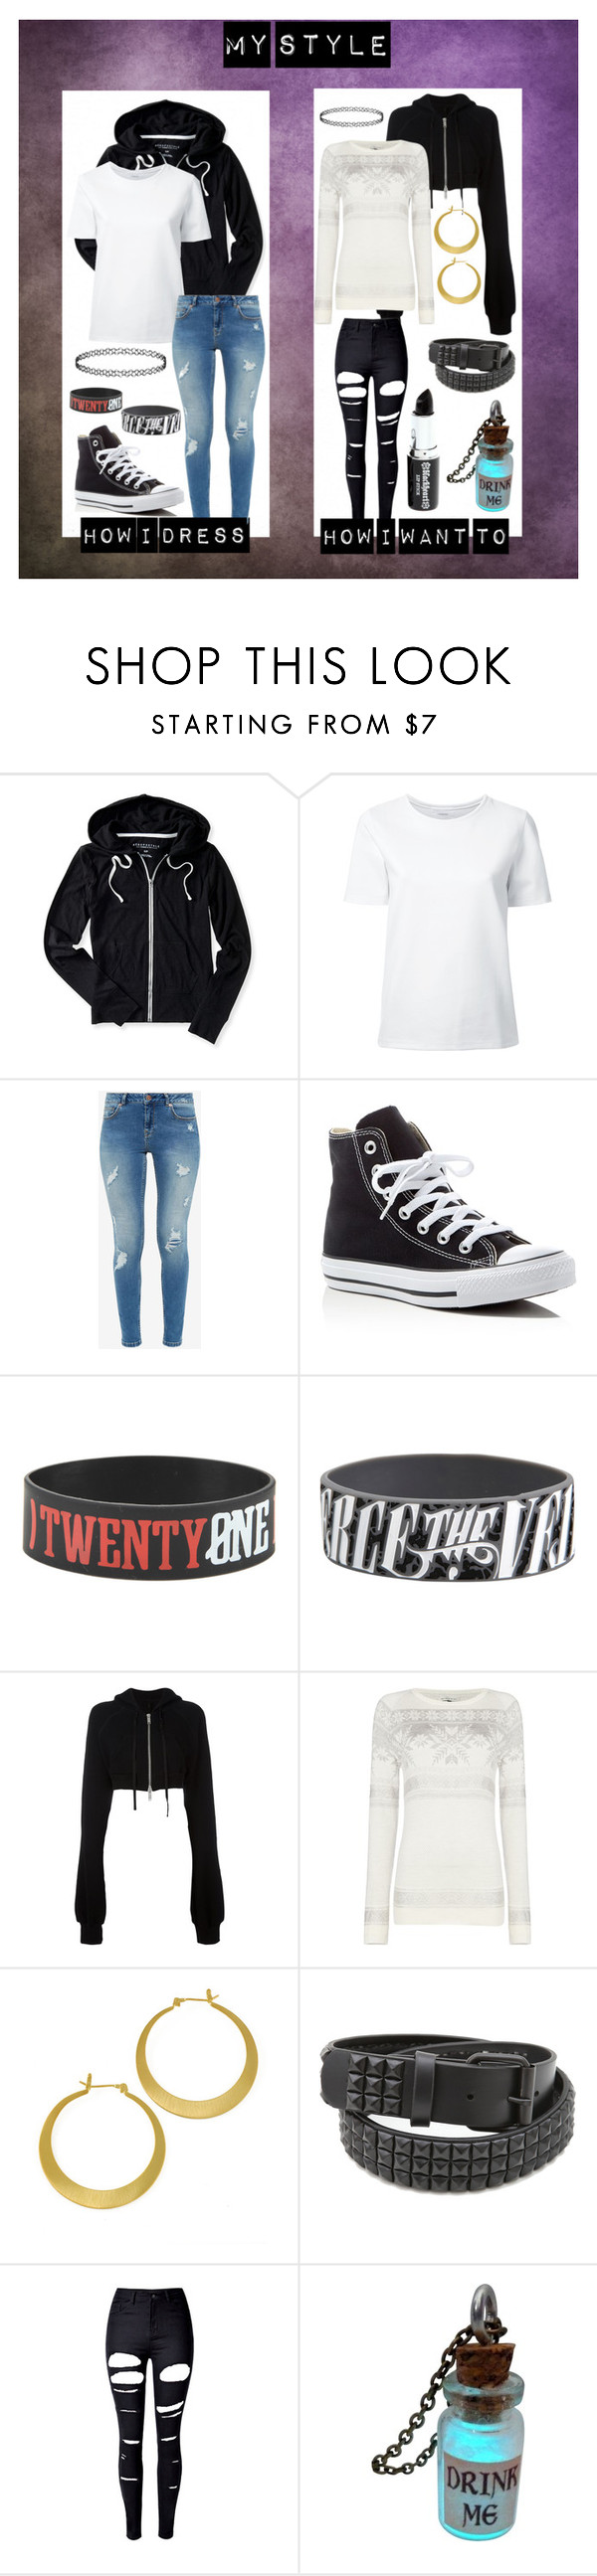 """""""My Style"""" by shadowrune ❤ liked on Polyvore featuring Aéropostale, Lemaire, Ted Baker, Converse, Unravel and WithChic"""